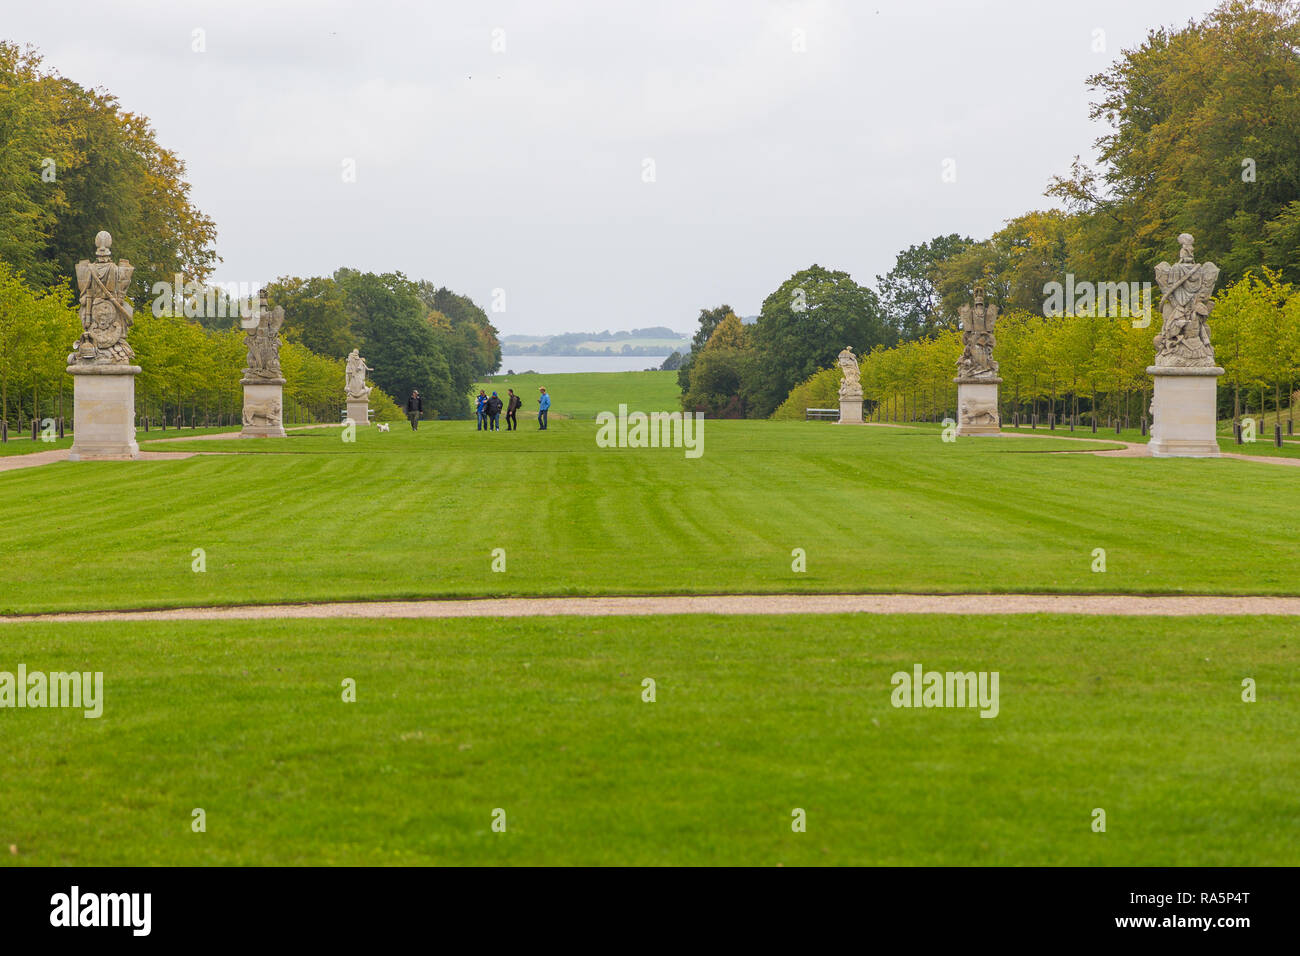 Fredensborg, Denmark- 30 August 2014: Sculptures in Palace gardens. The largest historical gardens in the Baroque style. - Stock Image